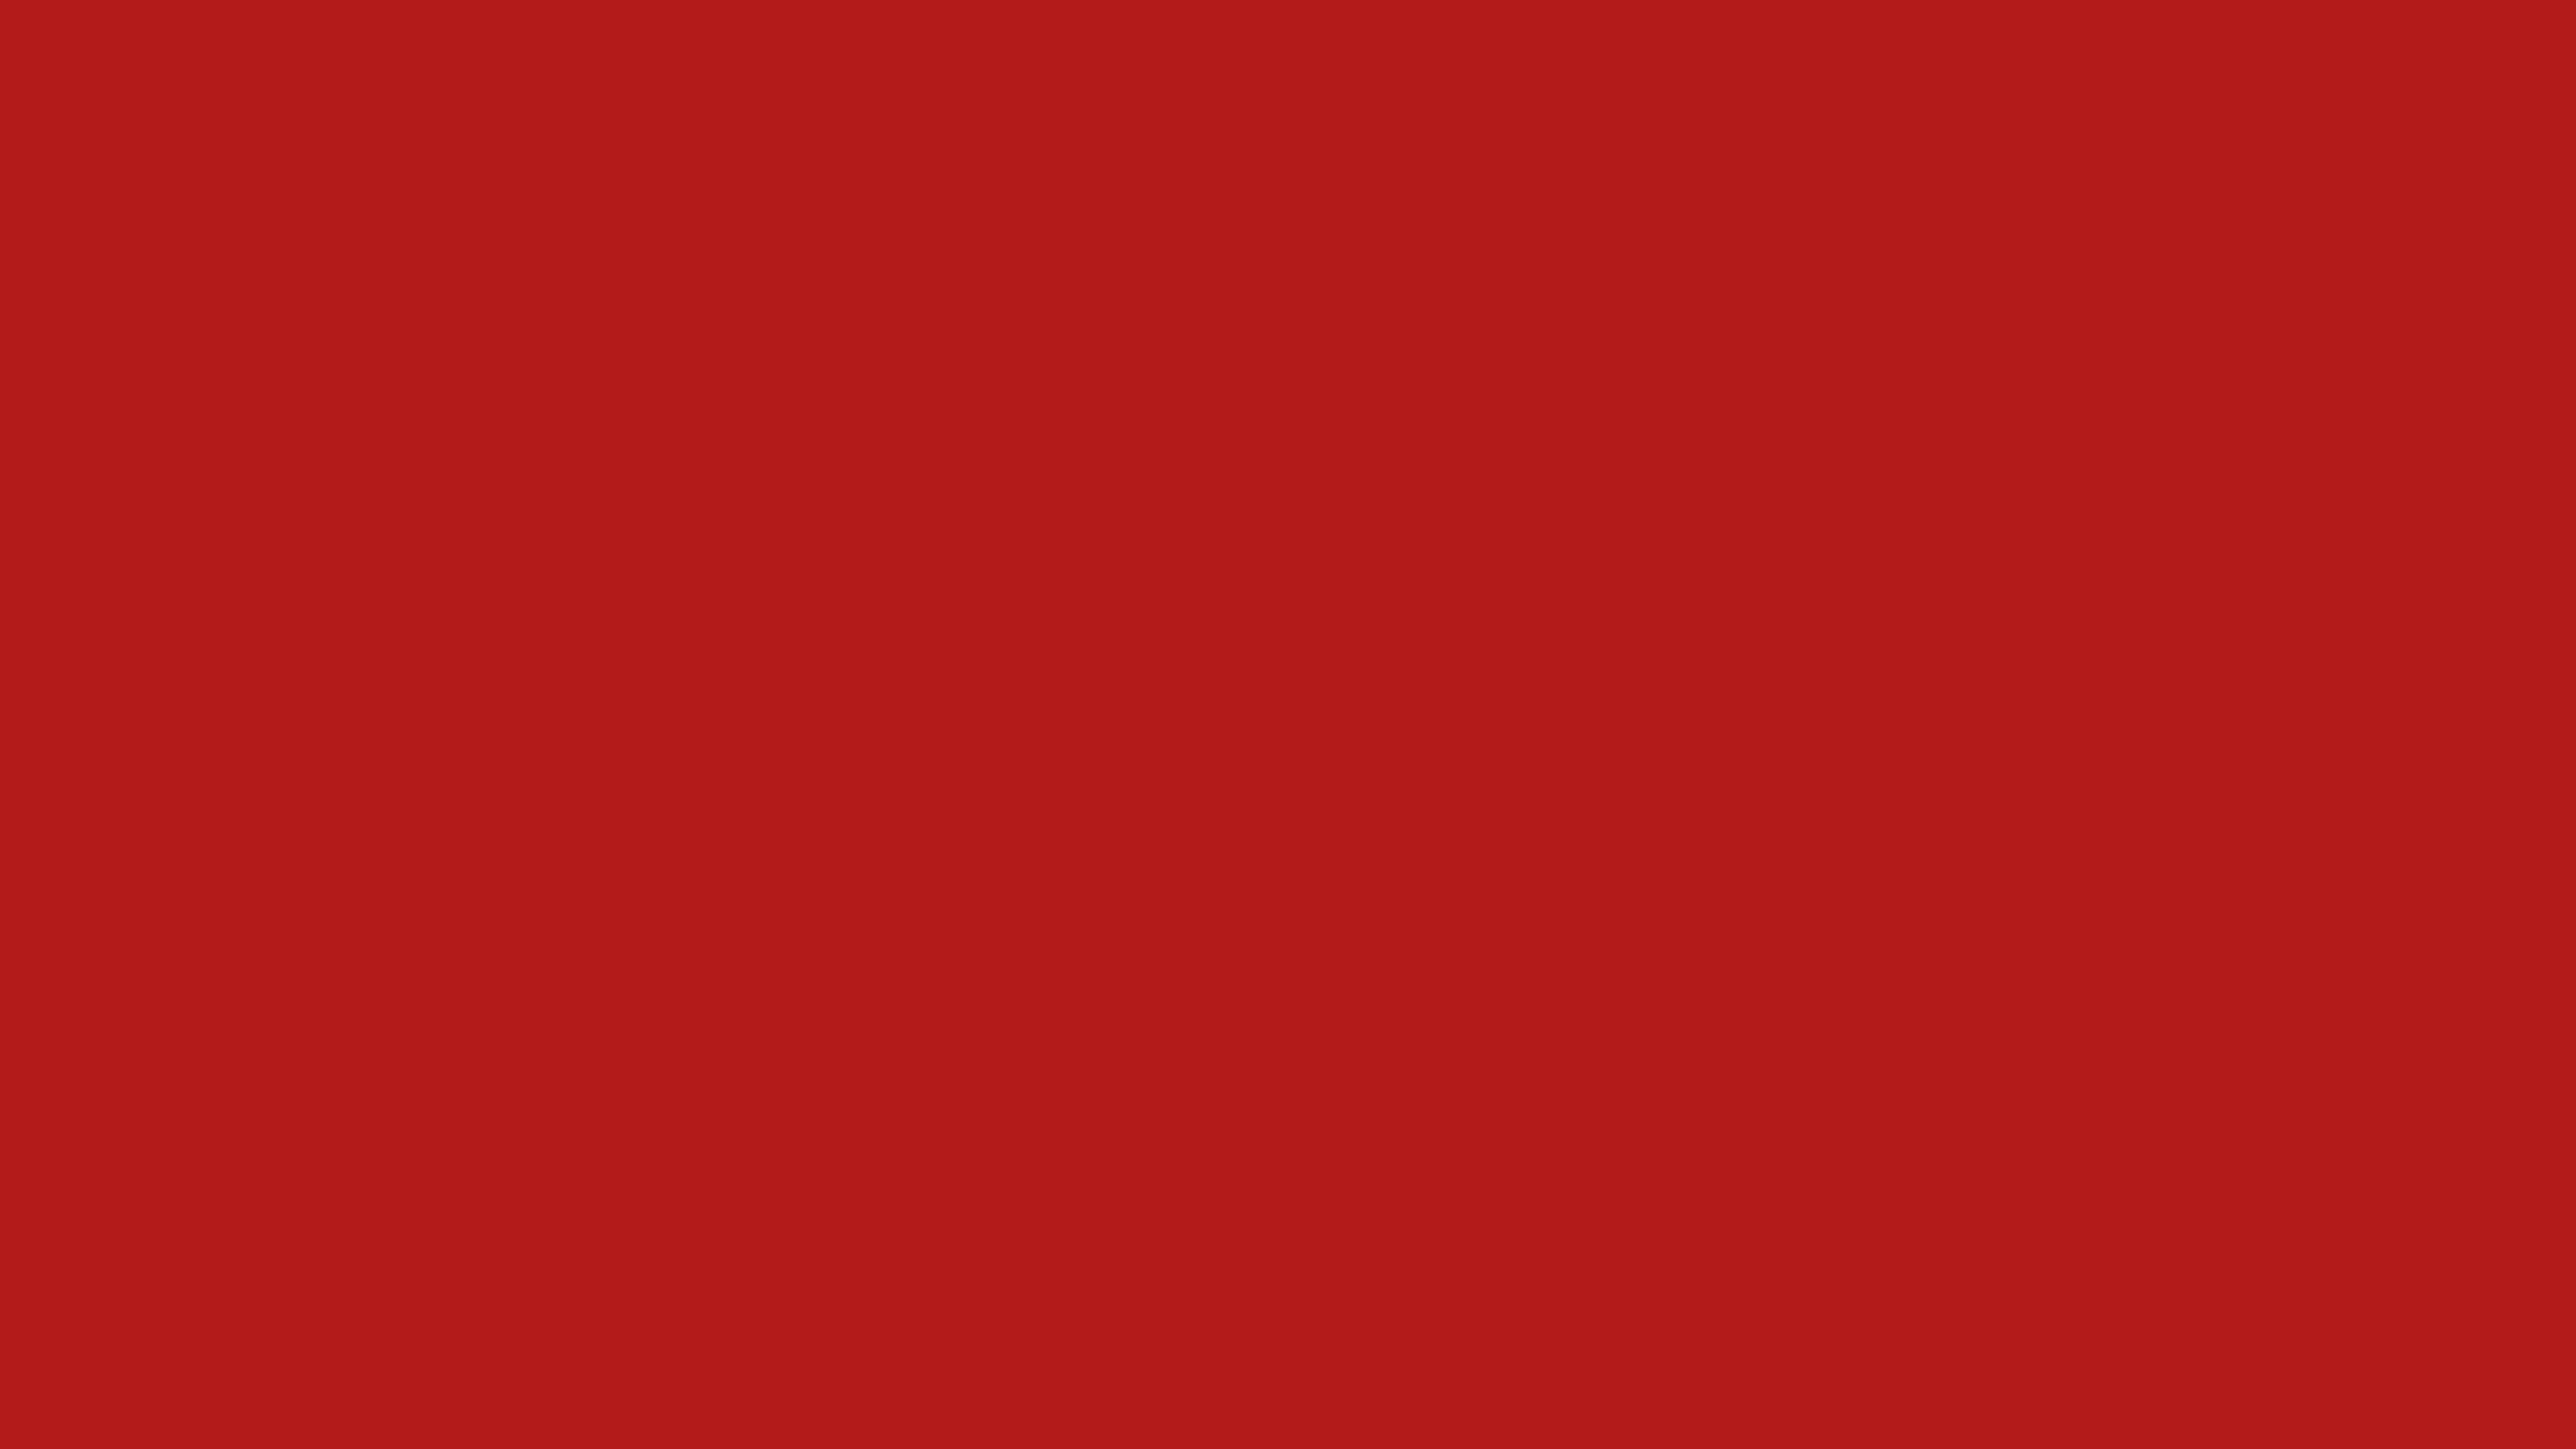 3840x2160 Cornell Red Solid Color Background